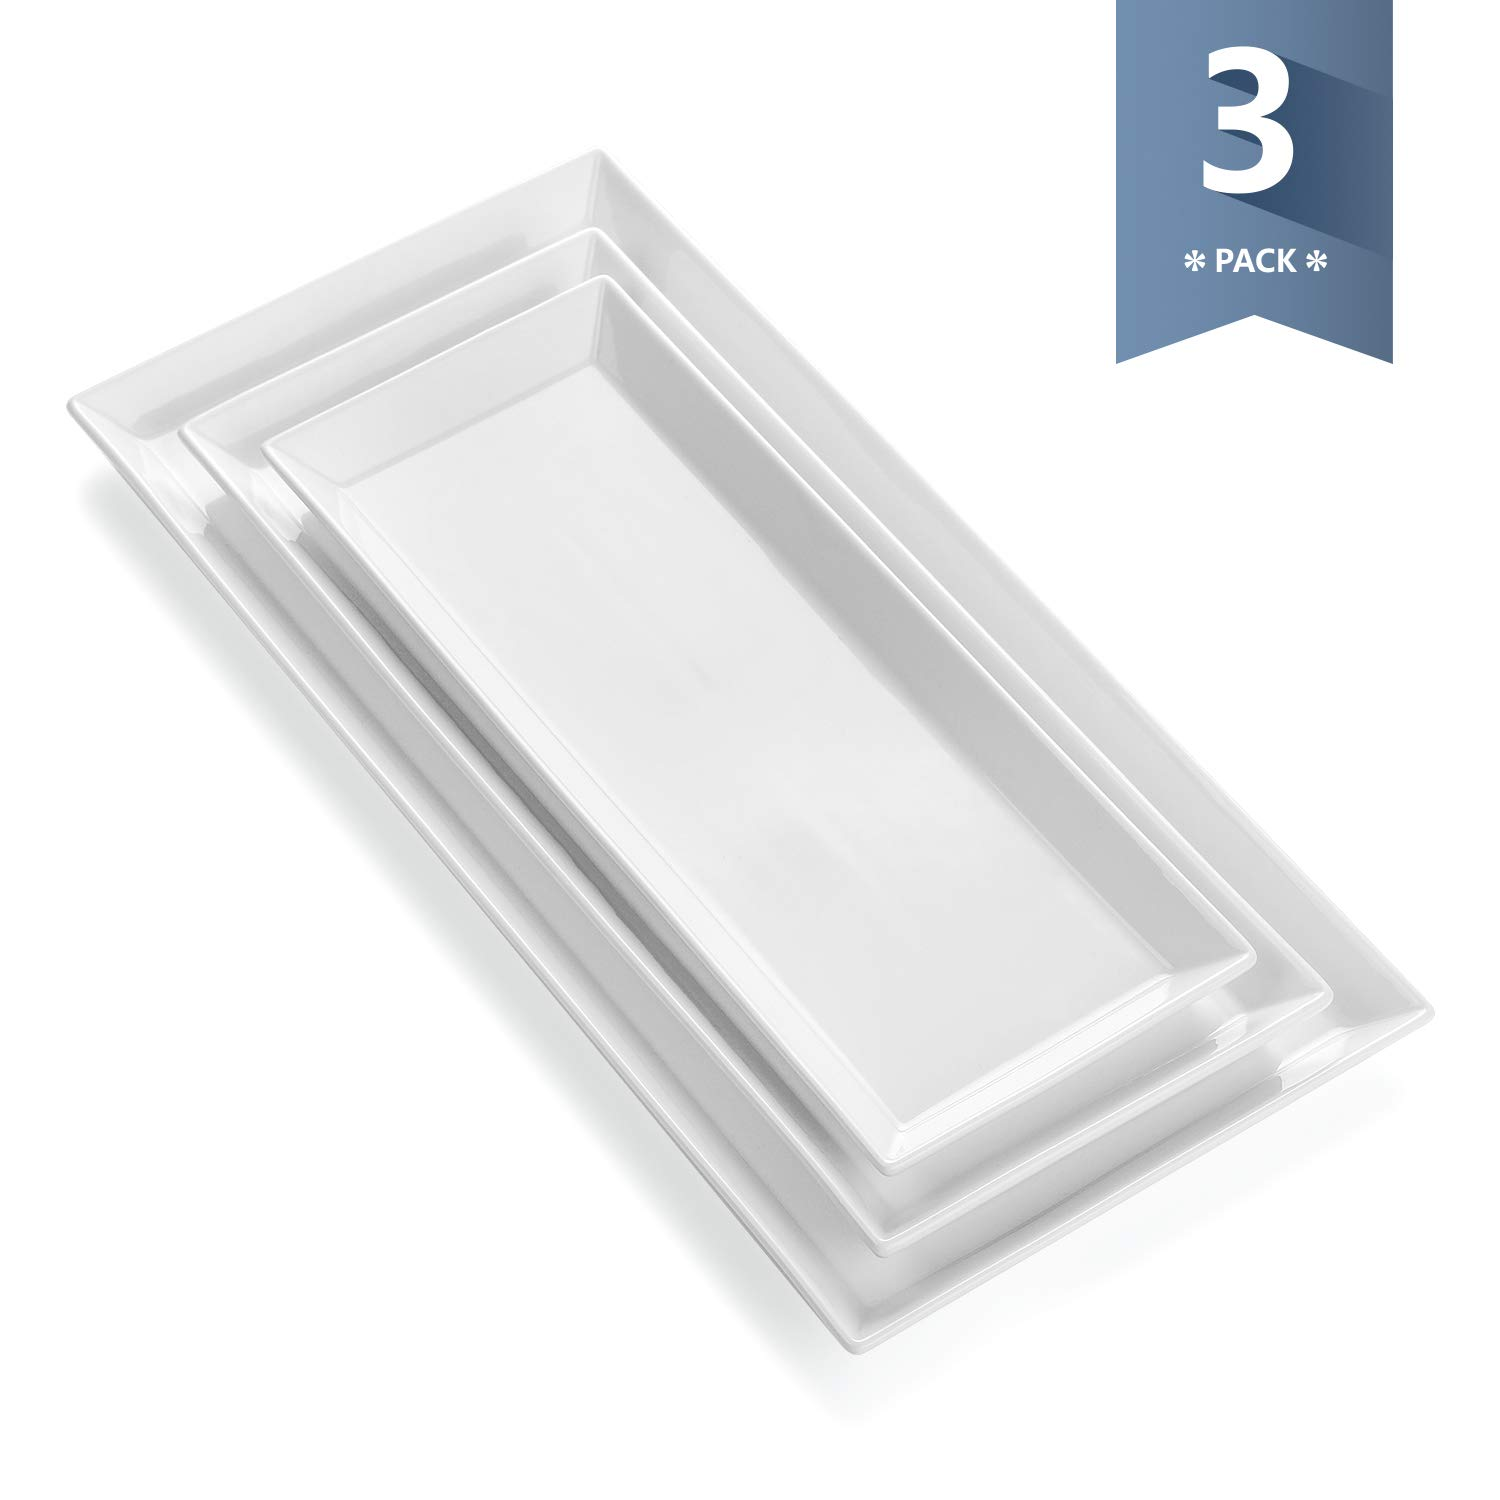 【Flash Deal】Sweese 3308 Porcelain Rectangular Platters/Serving trays for parties, Set of 3, Large/Medium/Small Size, White